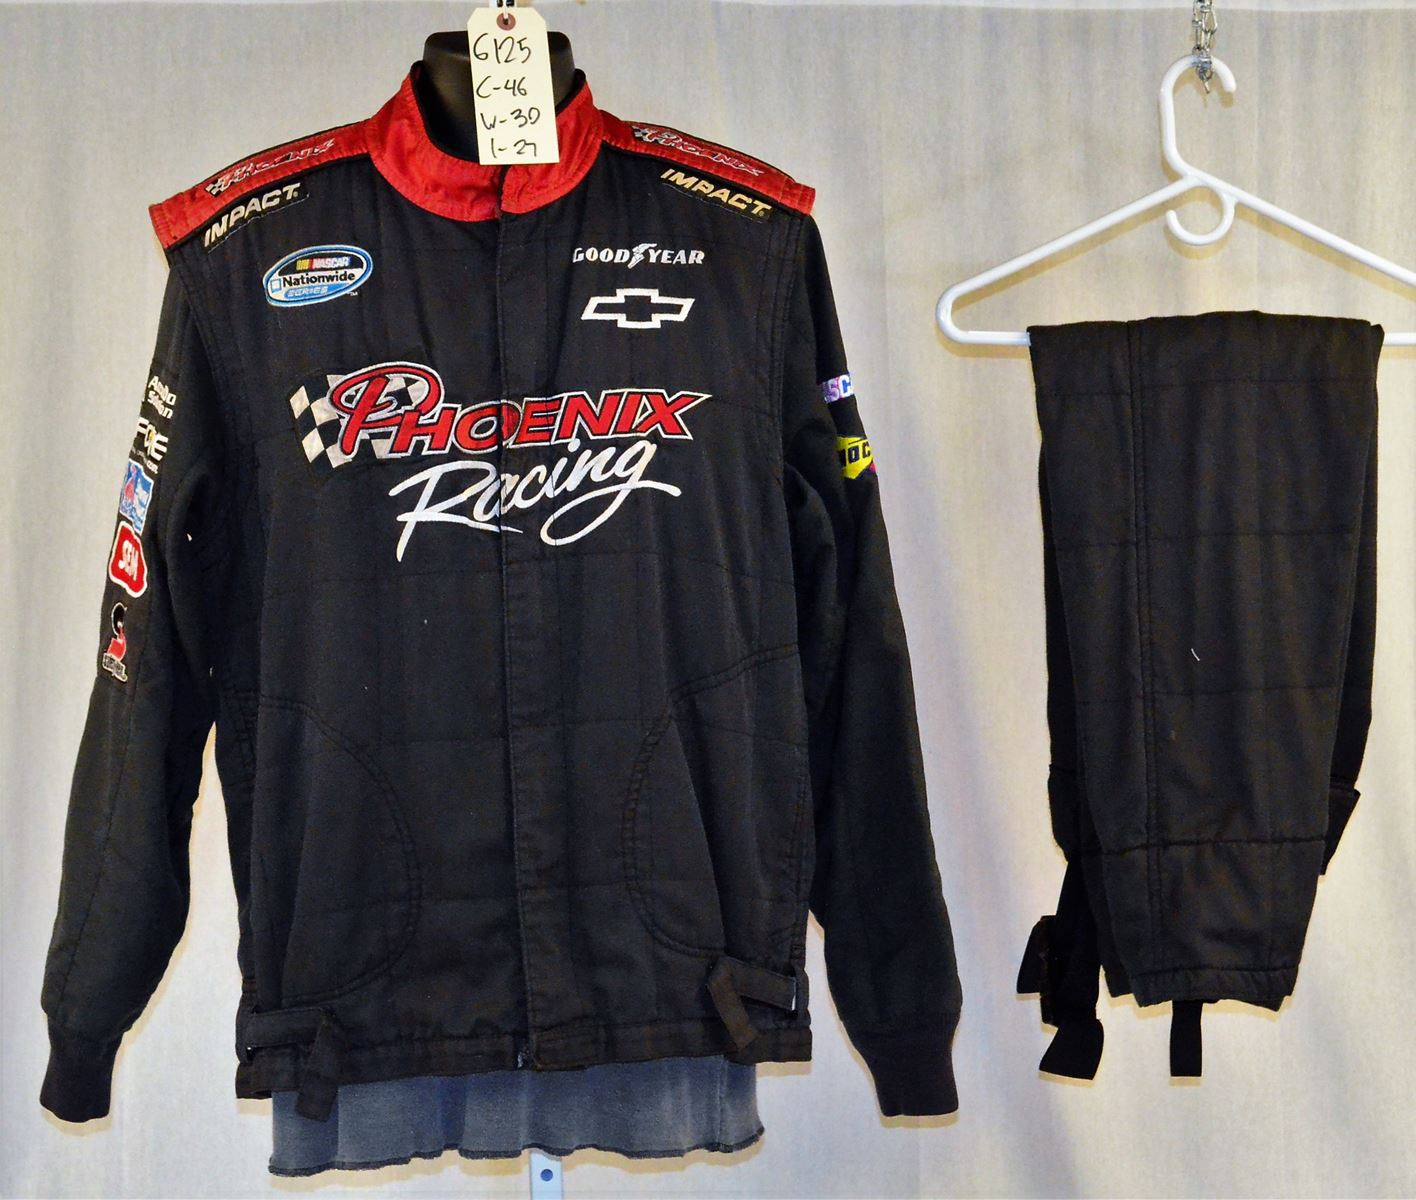 Racing Fire Suits >> Phoenix Racing Impact Sfi 5 3 Pc Race Used Nascar Fire Suit 6125 C46 W30 I27